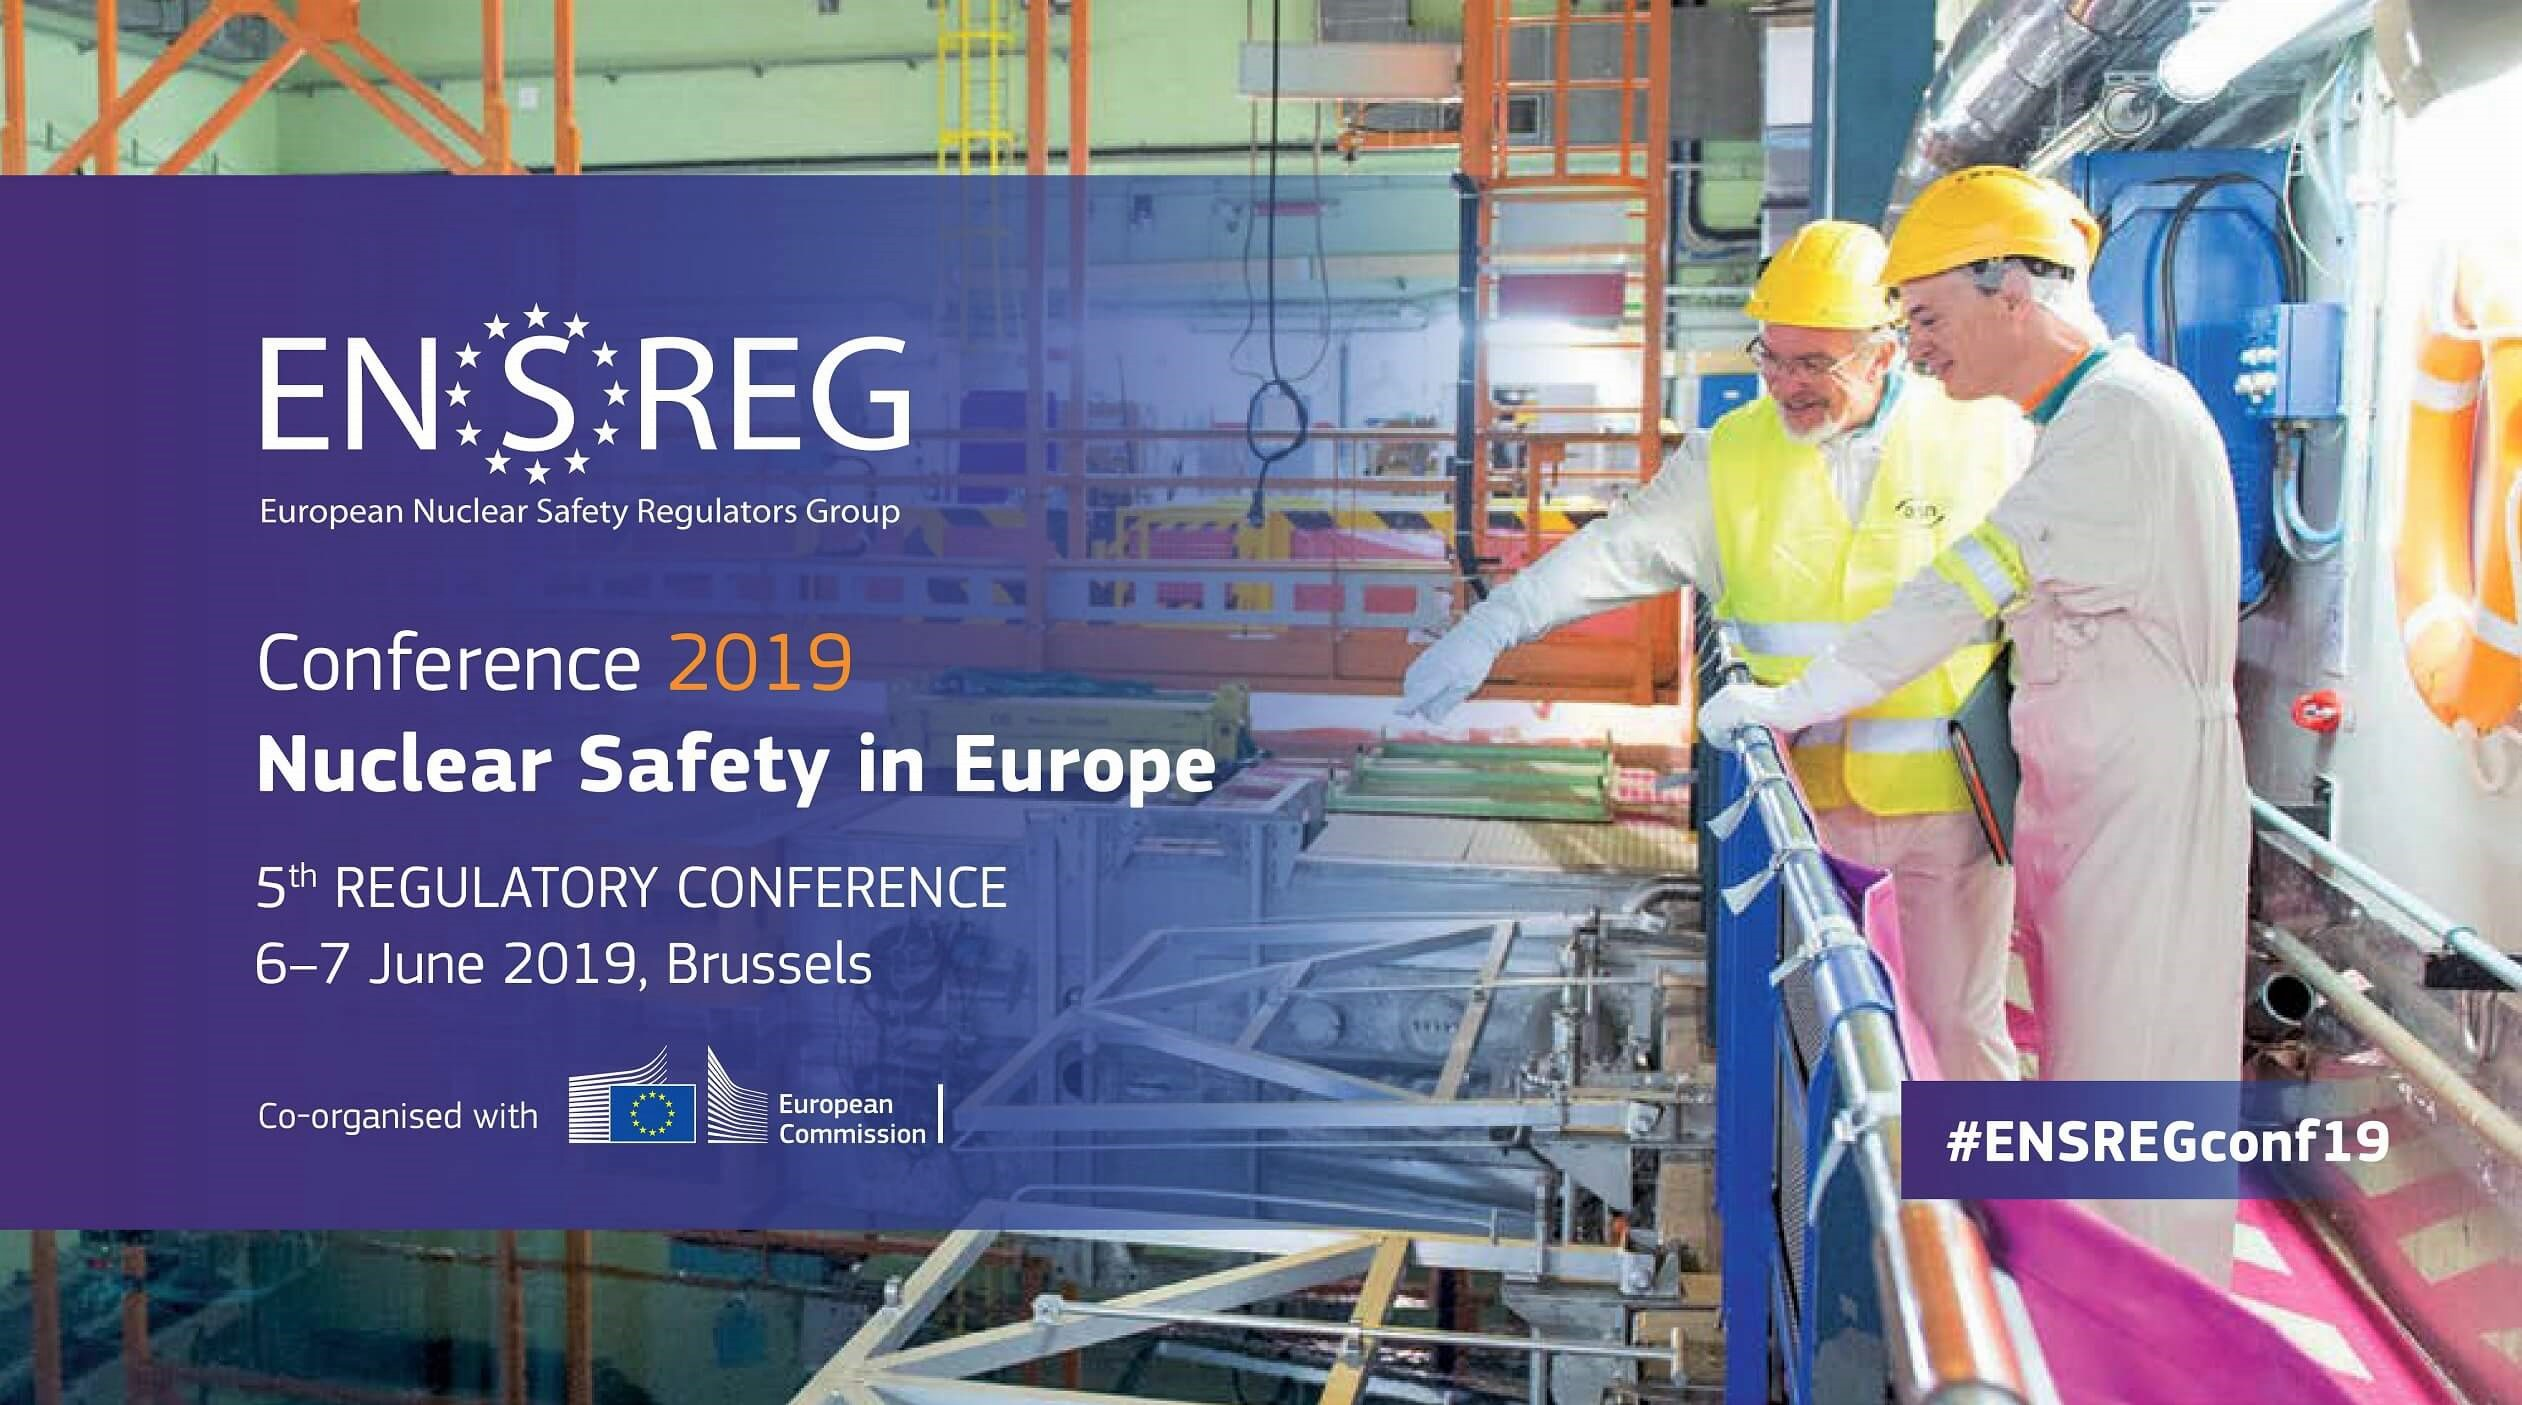 5th Regulatory Conference on Nuclear Safety in Europe